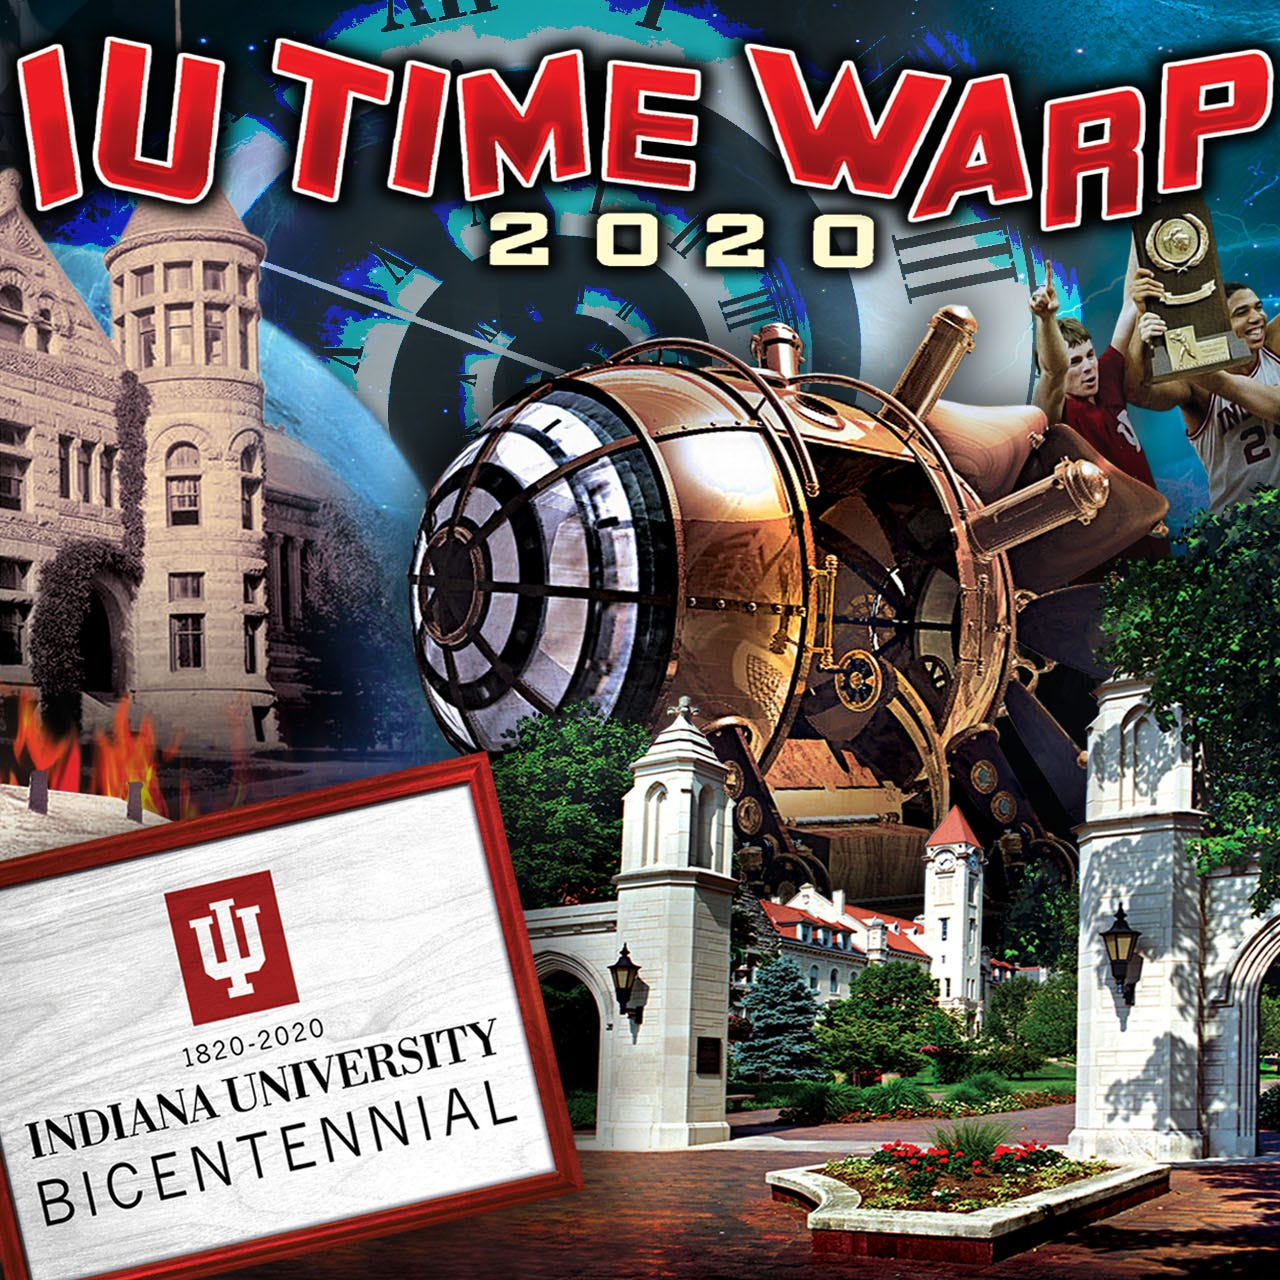 Escape Room Indianapolis imagines the world without Indiana University. Dystopia ensues.